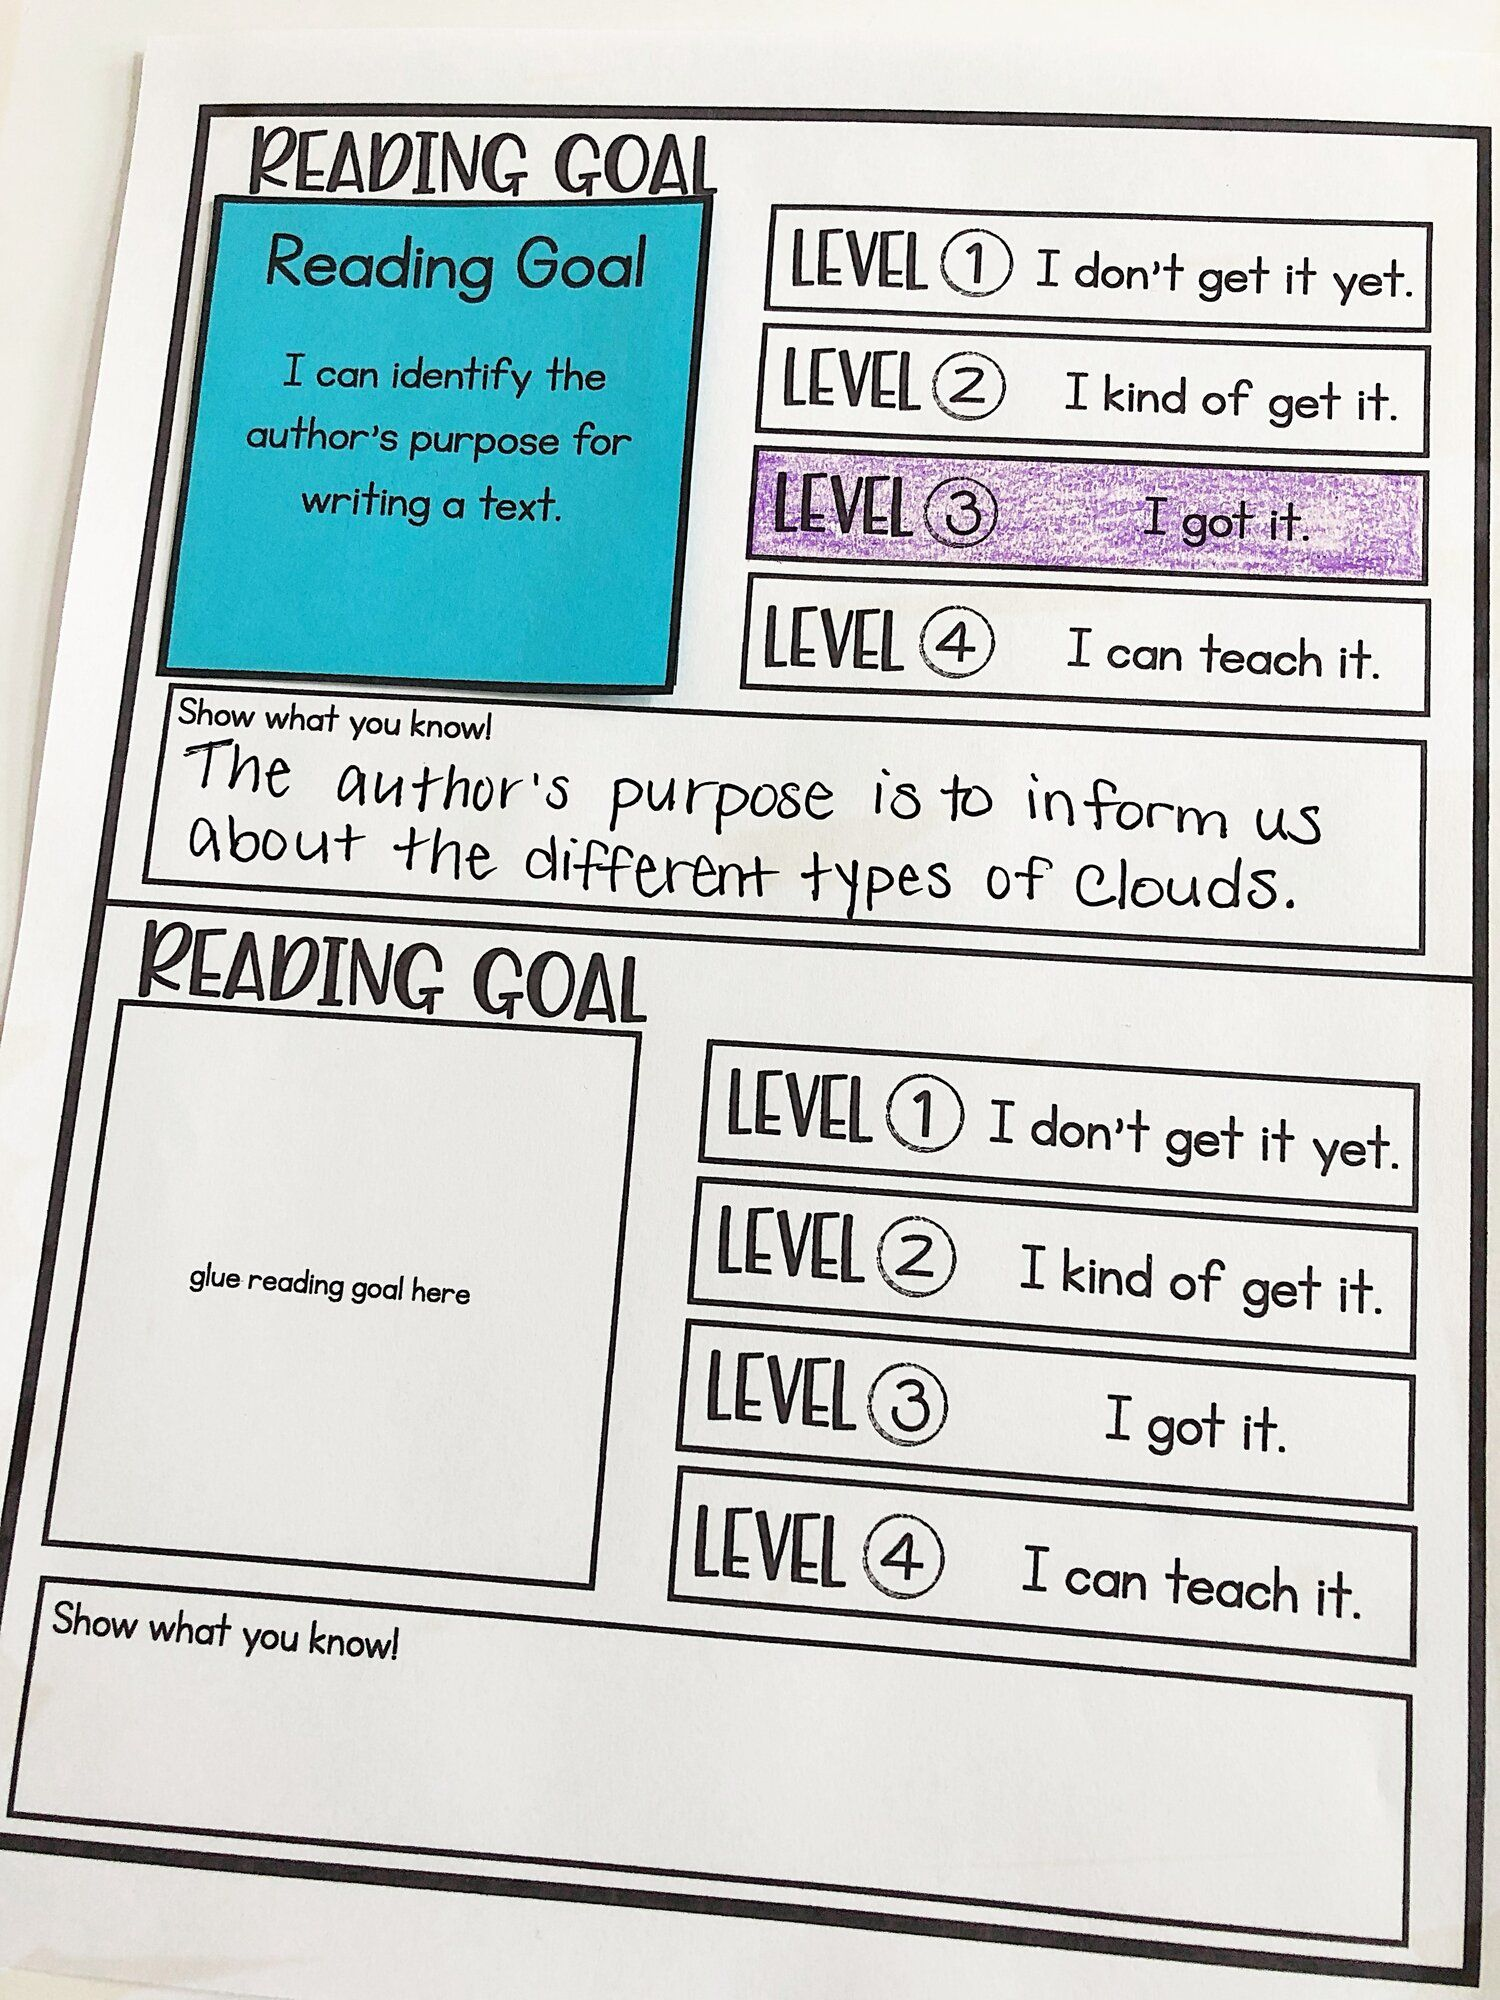 Check for Understanding through Student Goals and Self